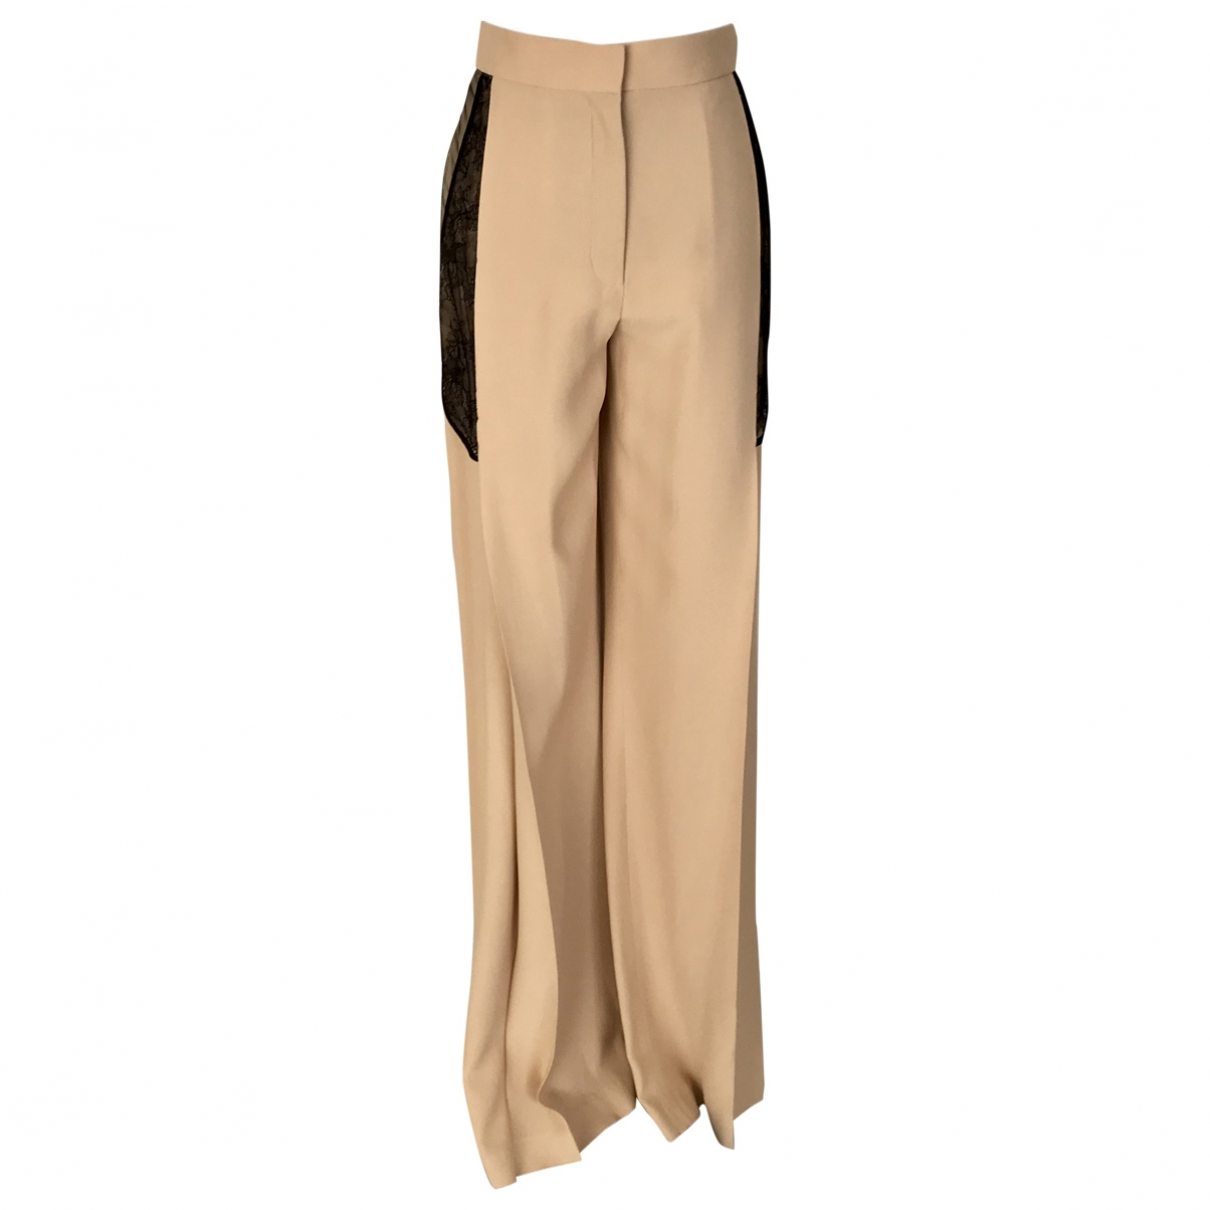 Zuhair Murad \N Beige Trousers for Women 42 IT